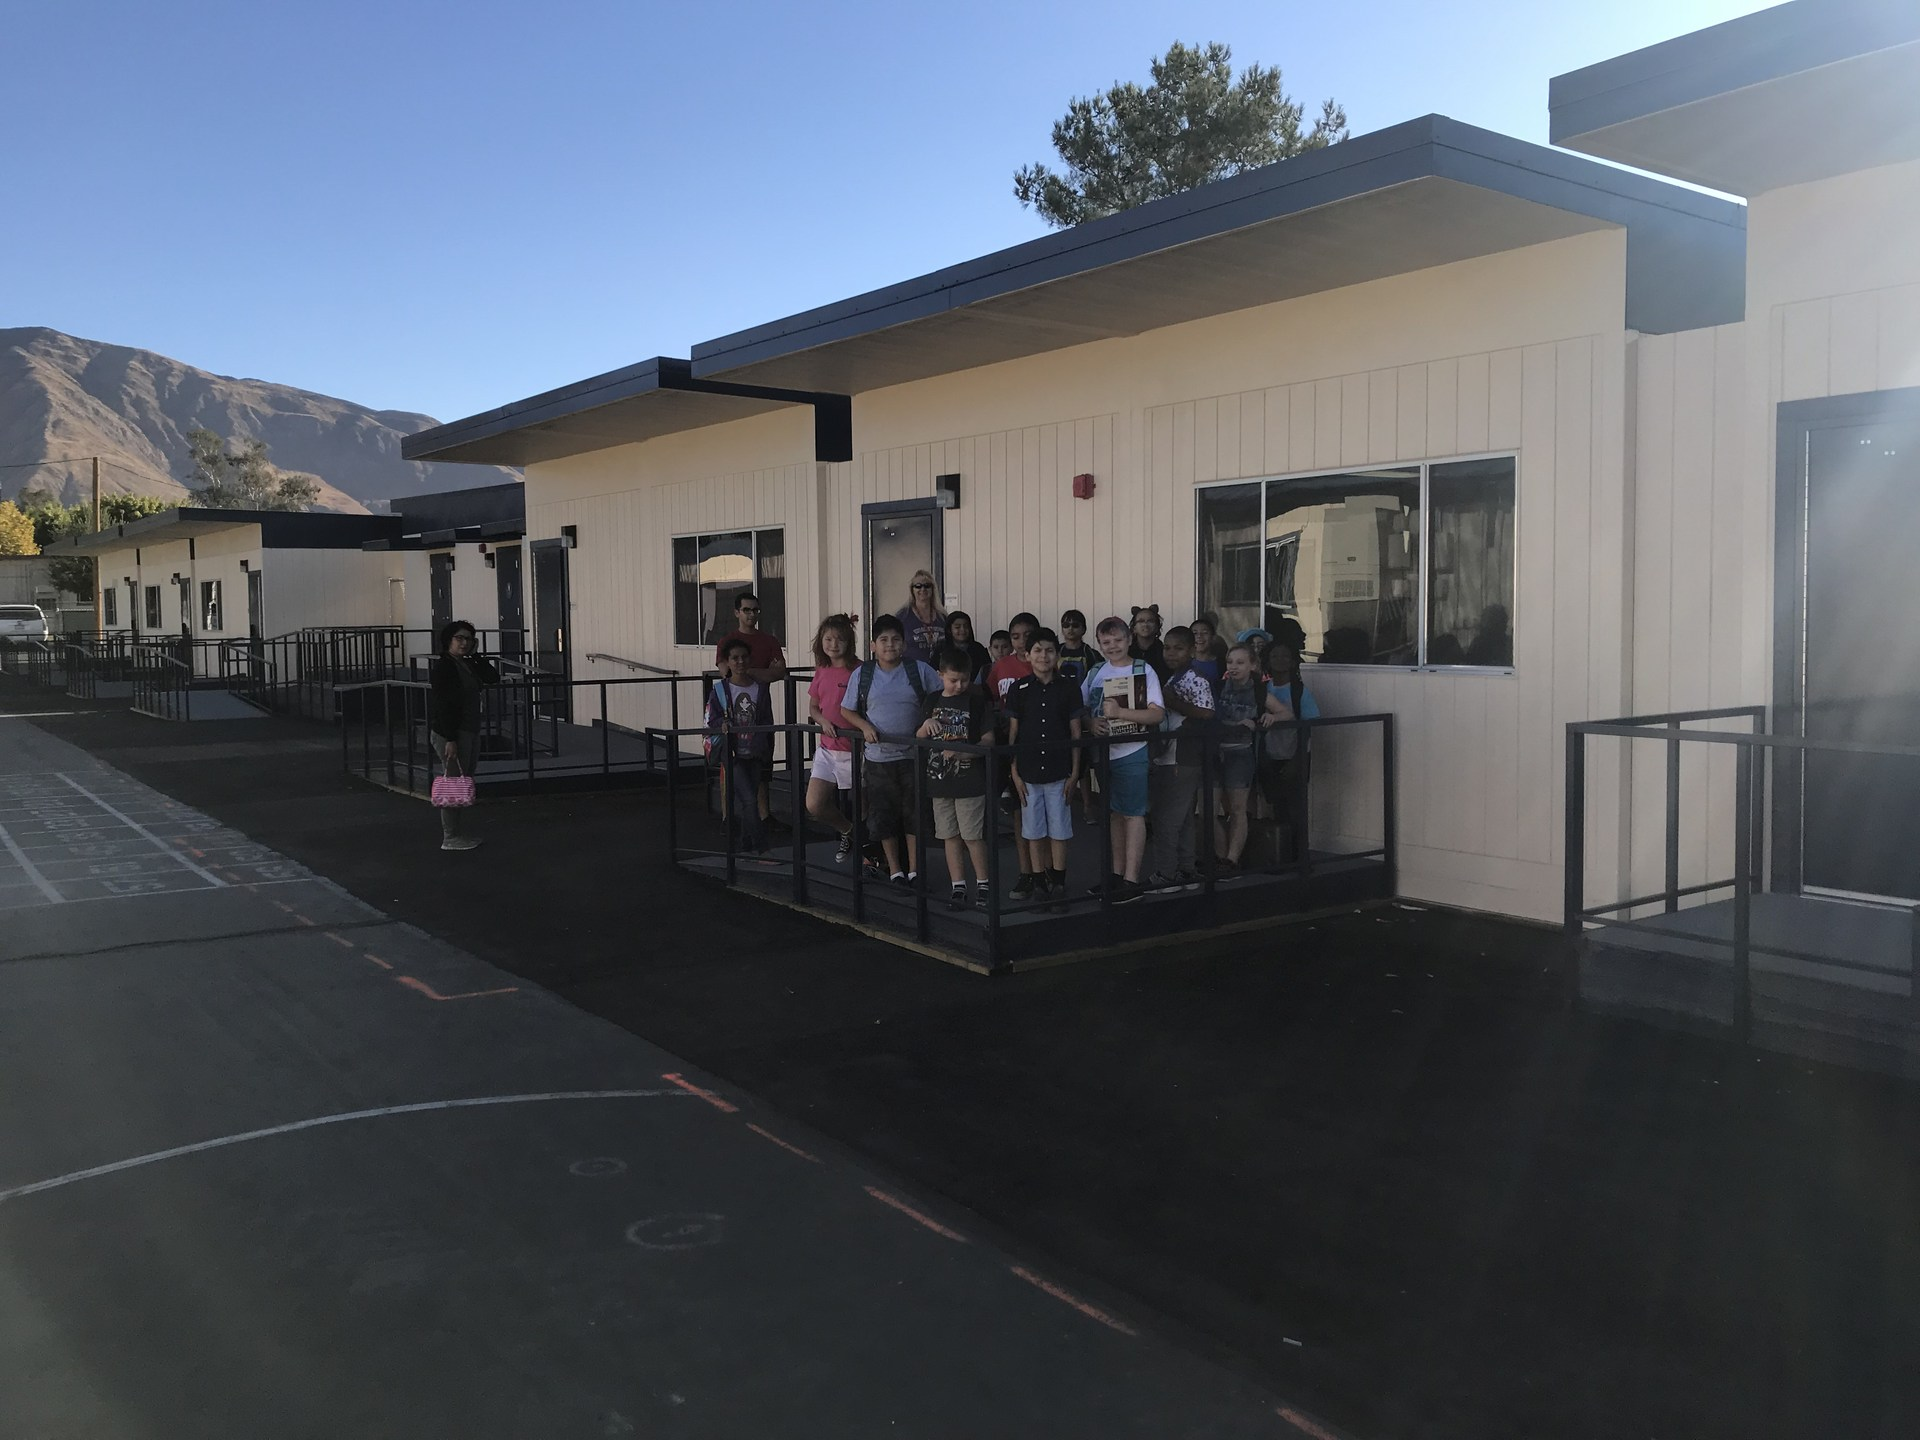 Juan Bautista De Anza Elementary classrooms are ready to occupy!